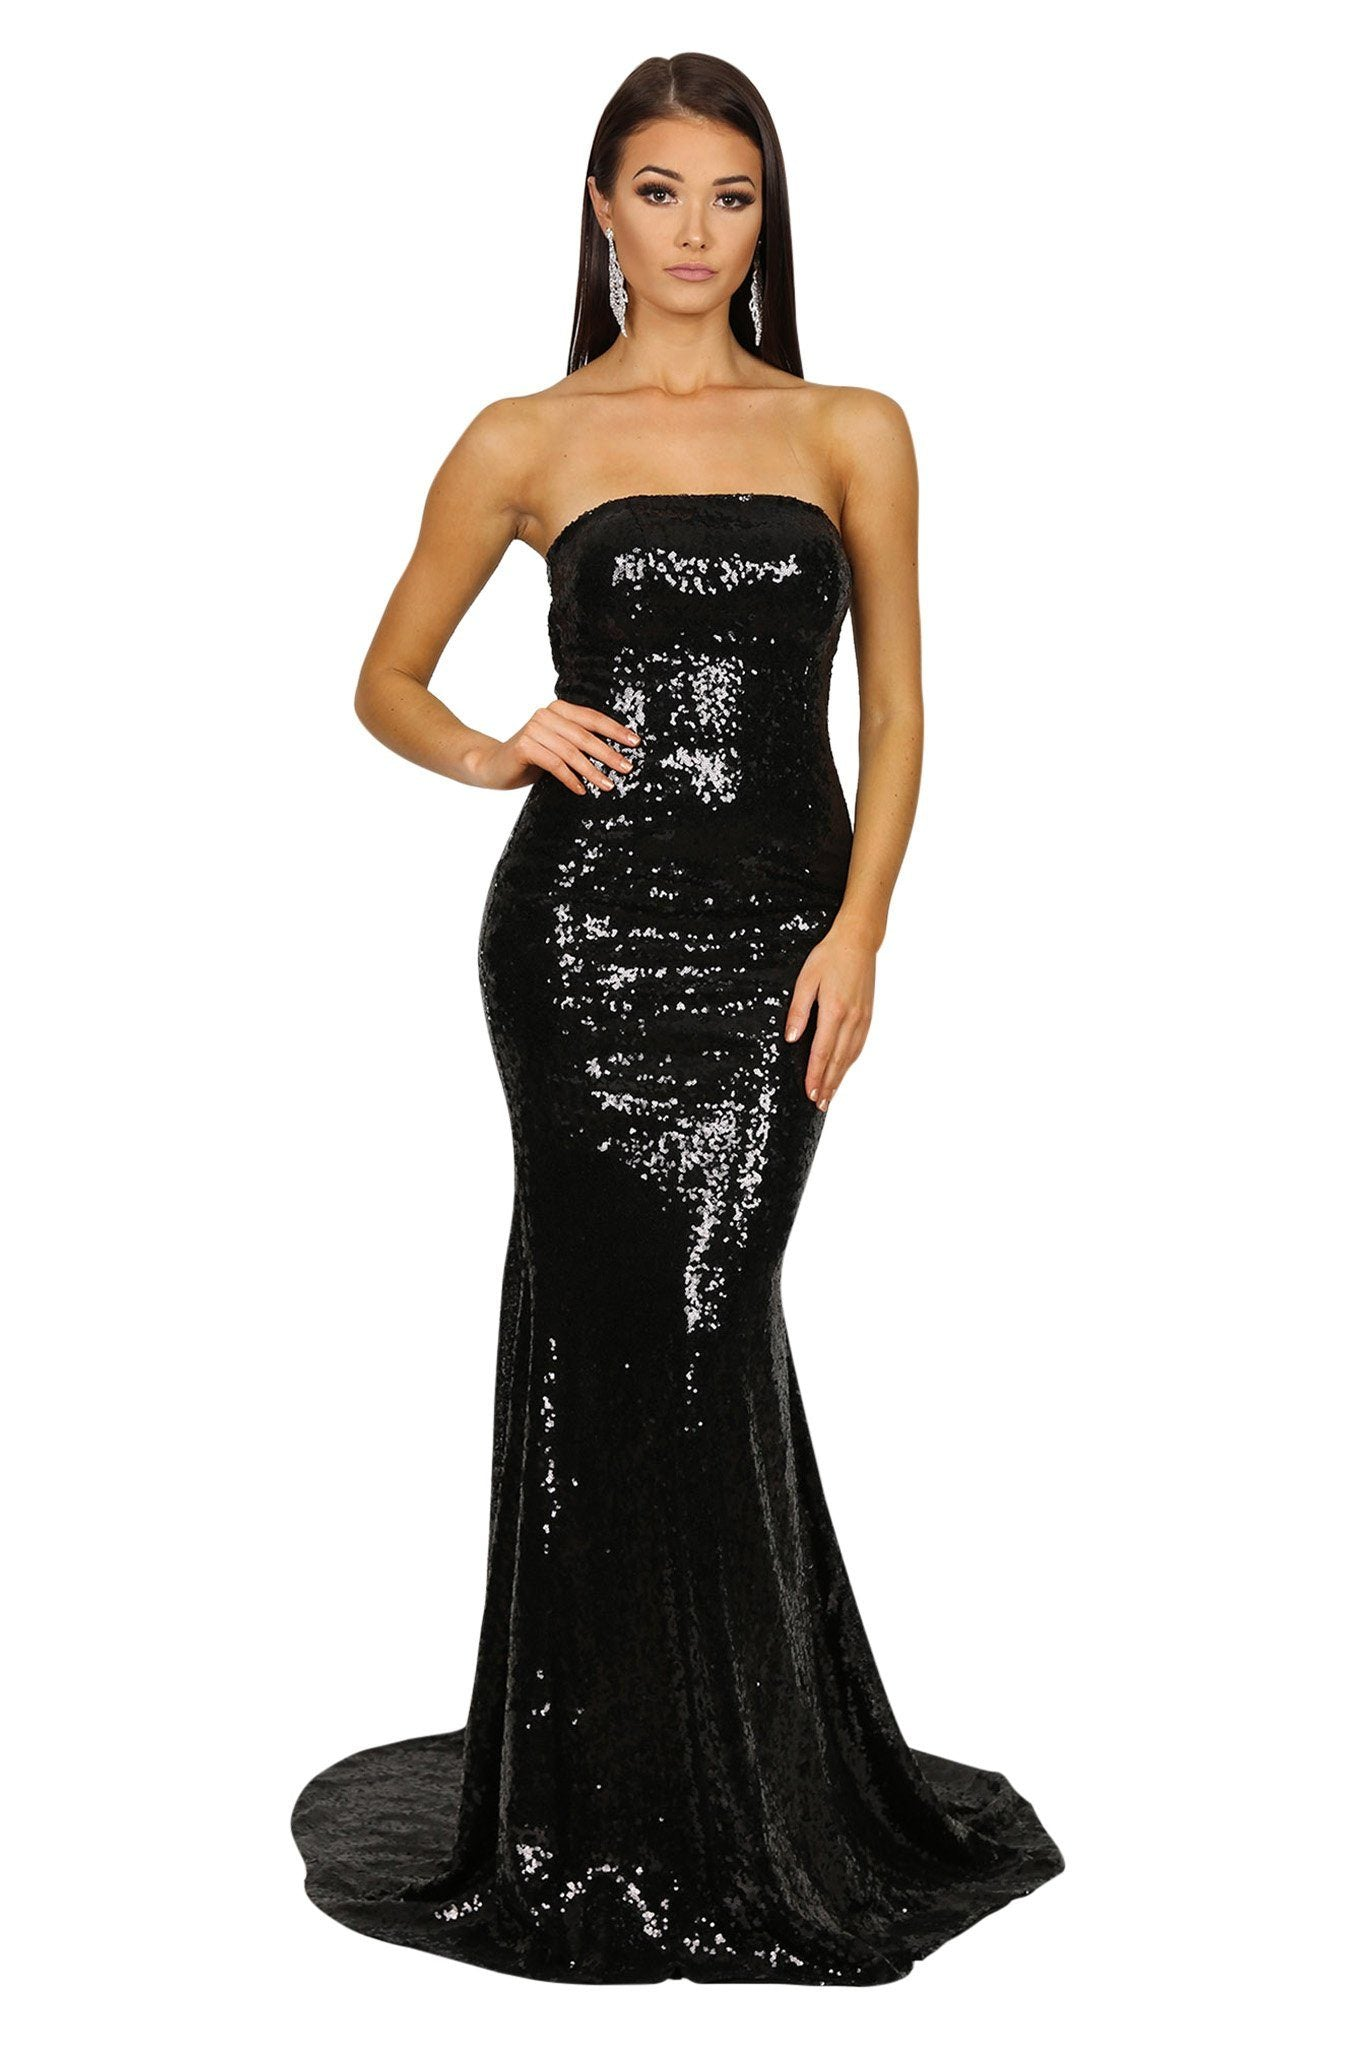 Front of black sequin sleeveless formal evening long gown features strapless straight neckline, flared mermaid skirt and long train